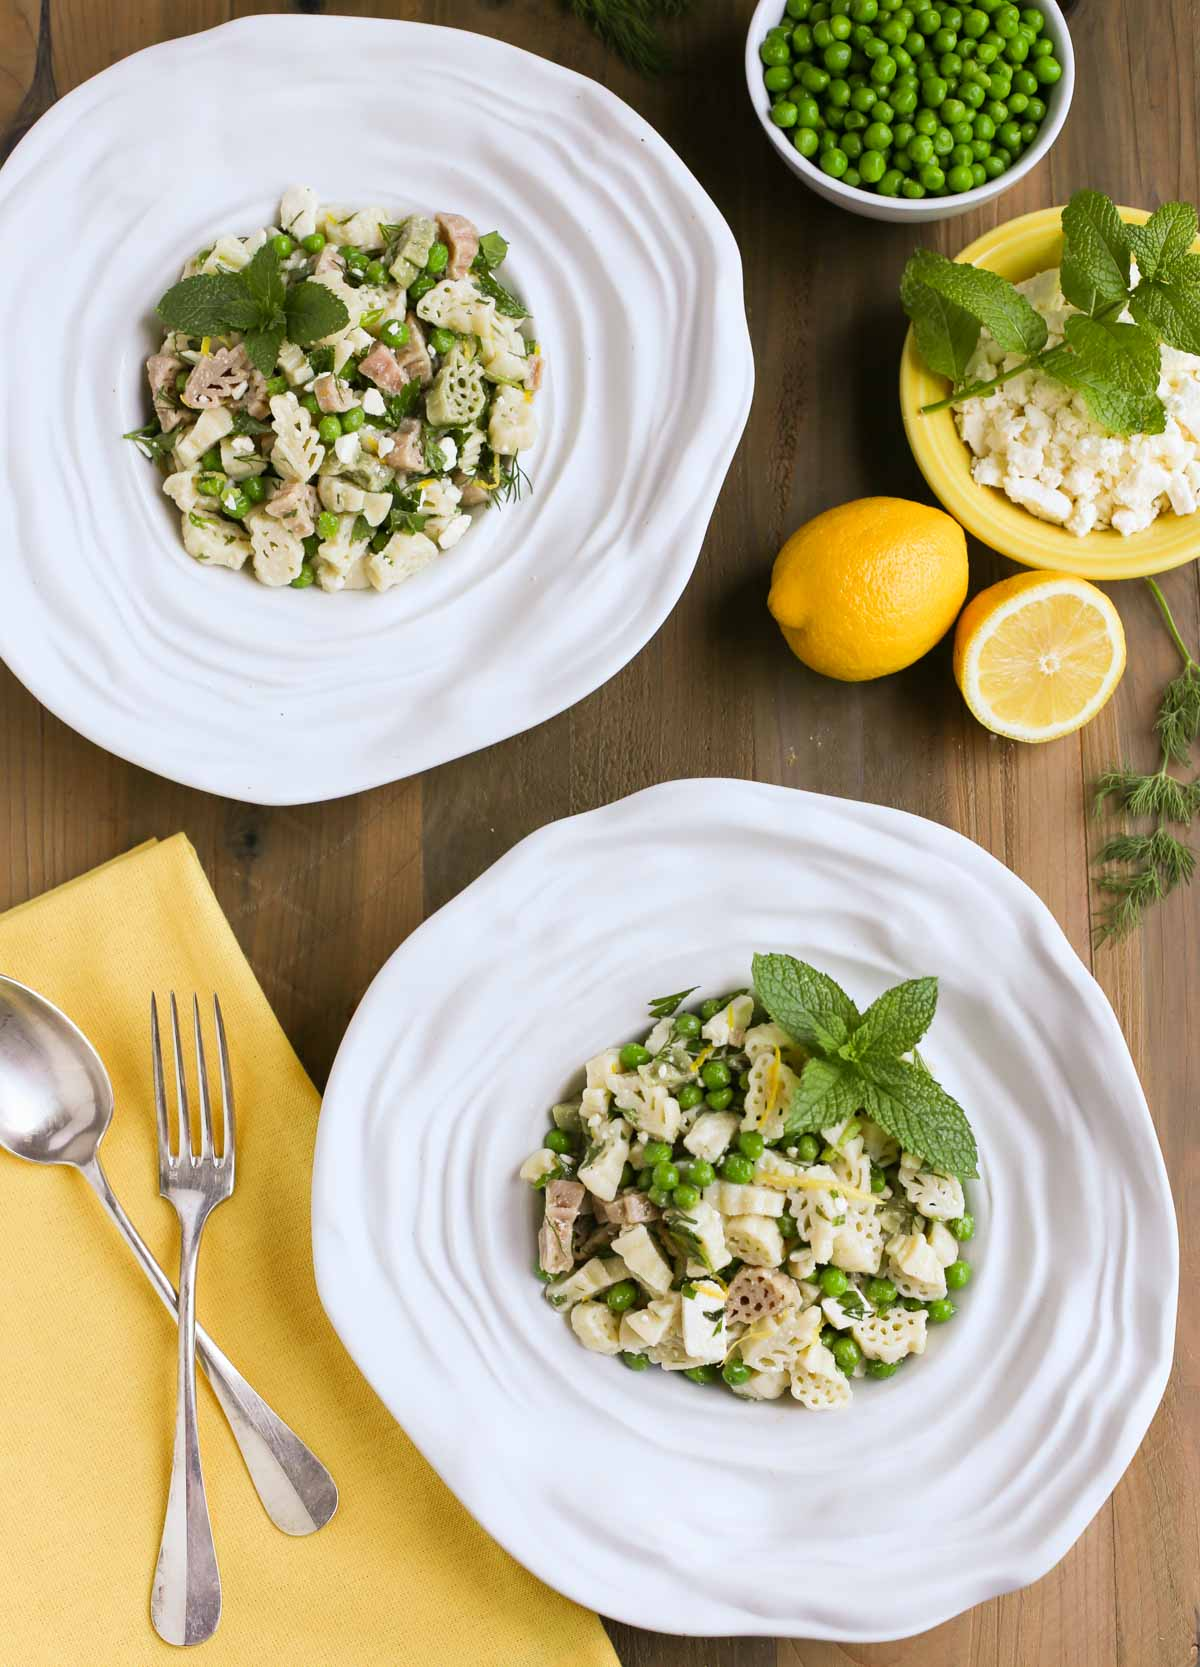 Light and Herby Mediterranean Pasta Salad   Lemon, Feta, and Fresh Chopped Herbs make this a light and delicious side dish! A tangy vinaigrette dressing ties it all together...yum! Great with any grilled meats or seafood!   WorldofPastabilities.com